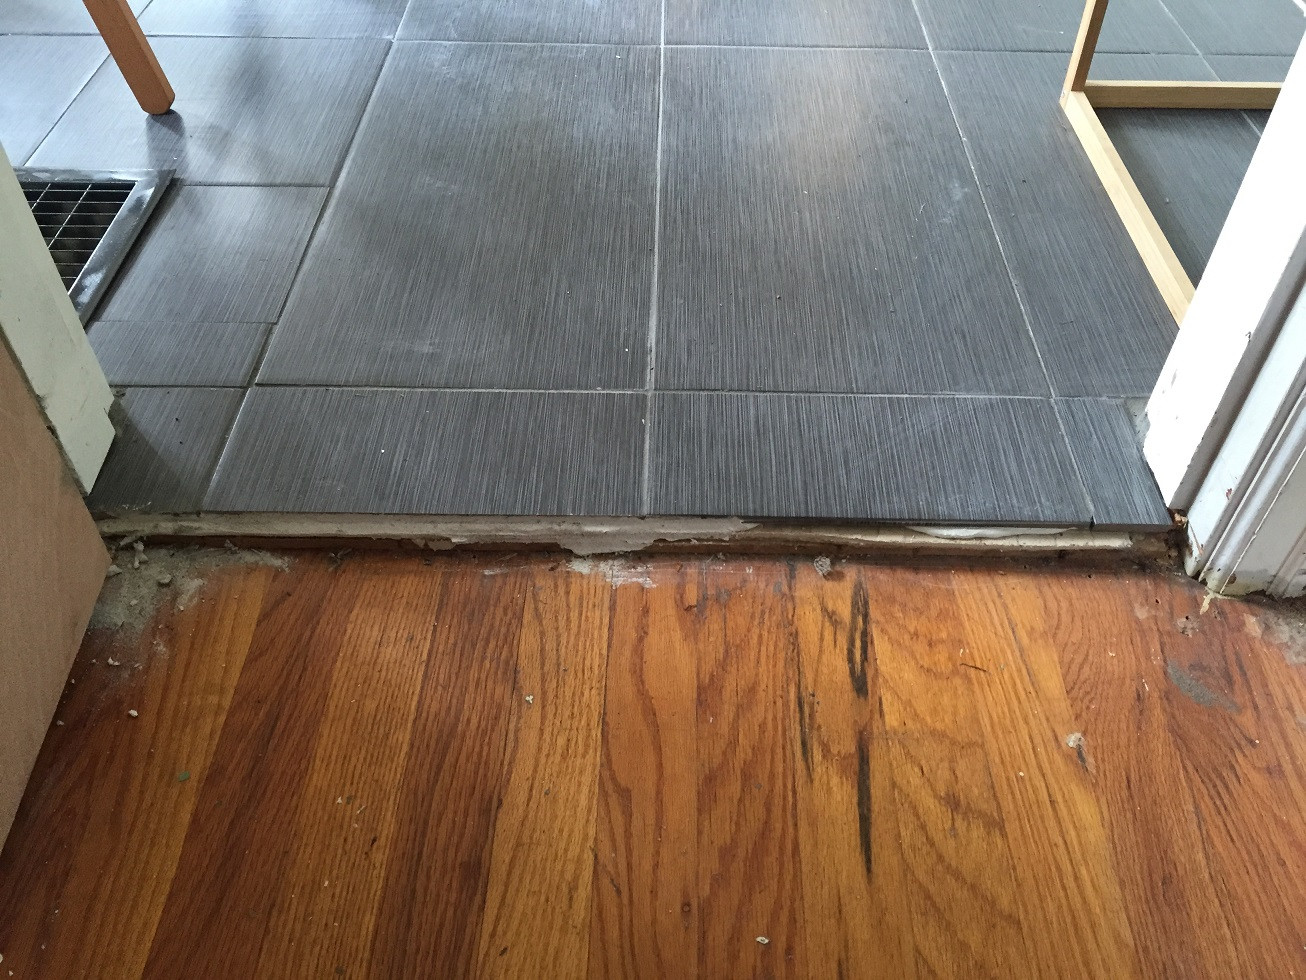 Strong wood floor great wood floor transitions flooring how do i transition from a to tile AGZXJKZ